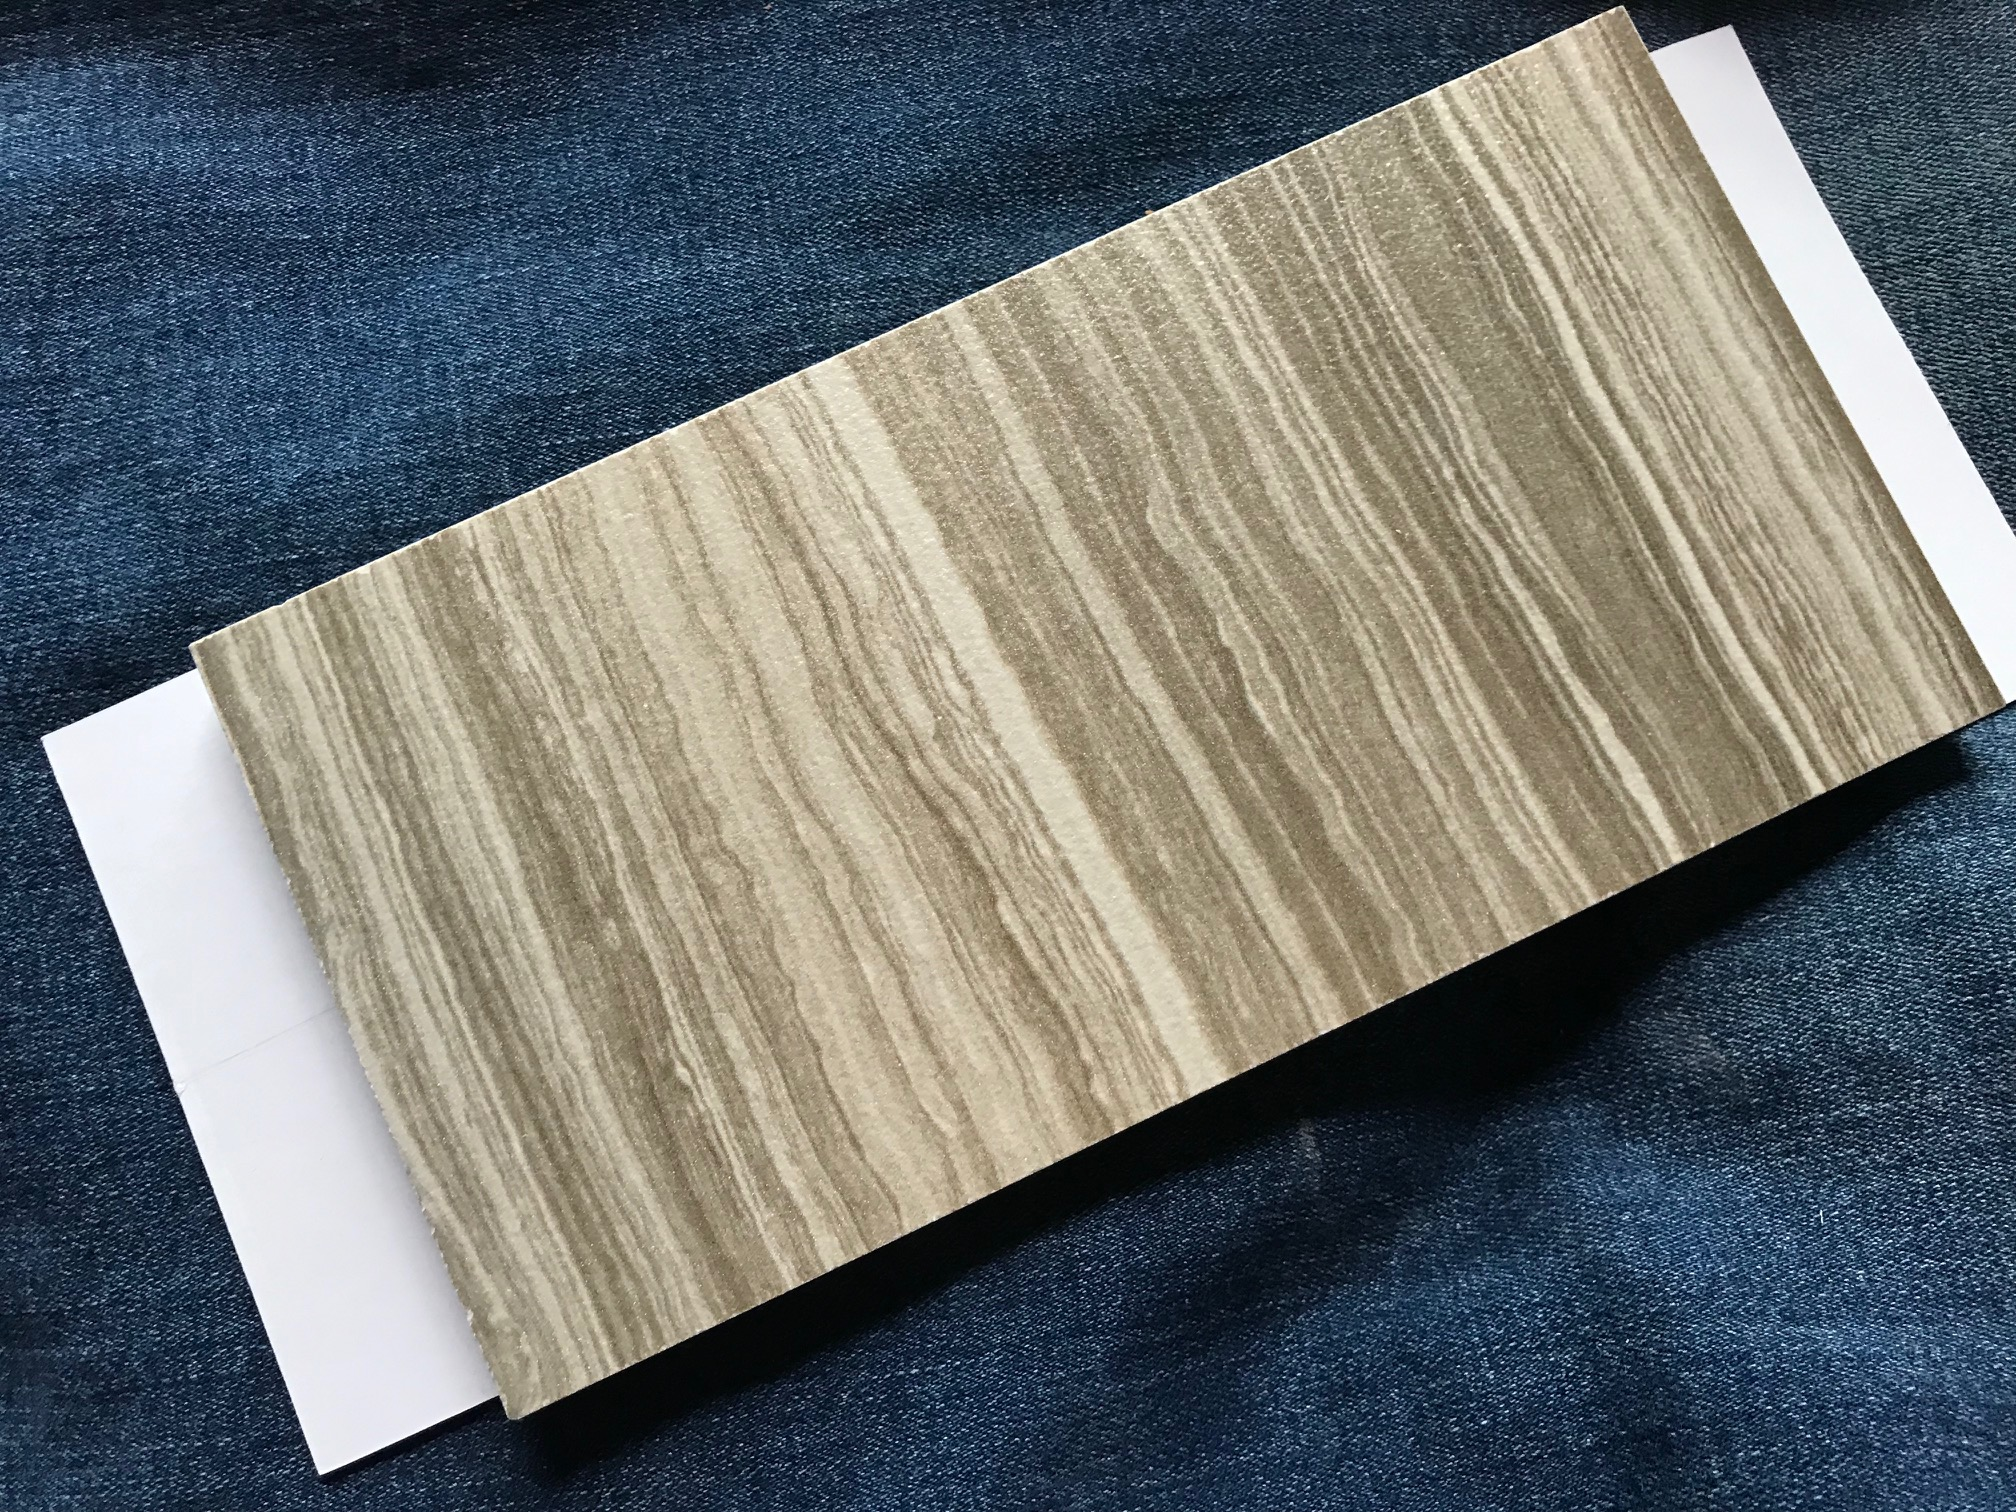 Traverse Kyoto Taupe Porcelain Tile from tilebar: 37 +/- 15 ppm Lead (safe by all standards)